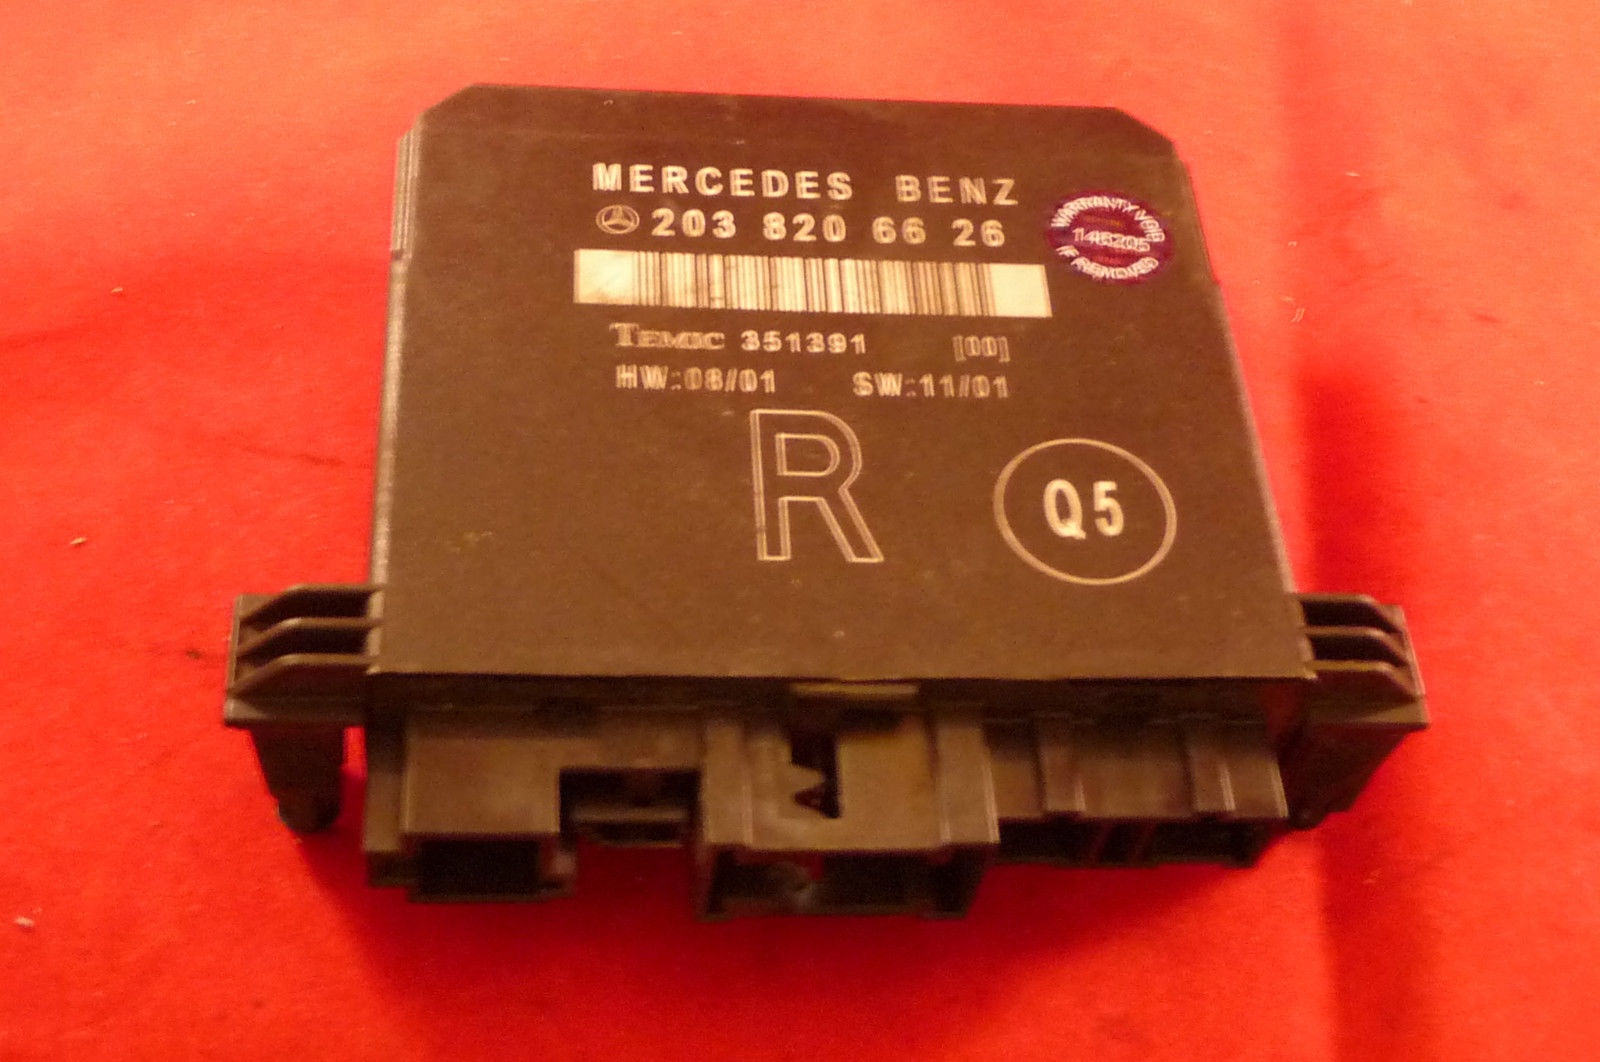 Mercedes Benz C Class W203 Door Control Unit Rear Right A 2038206626 OEM OE